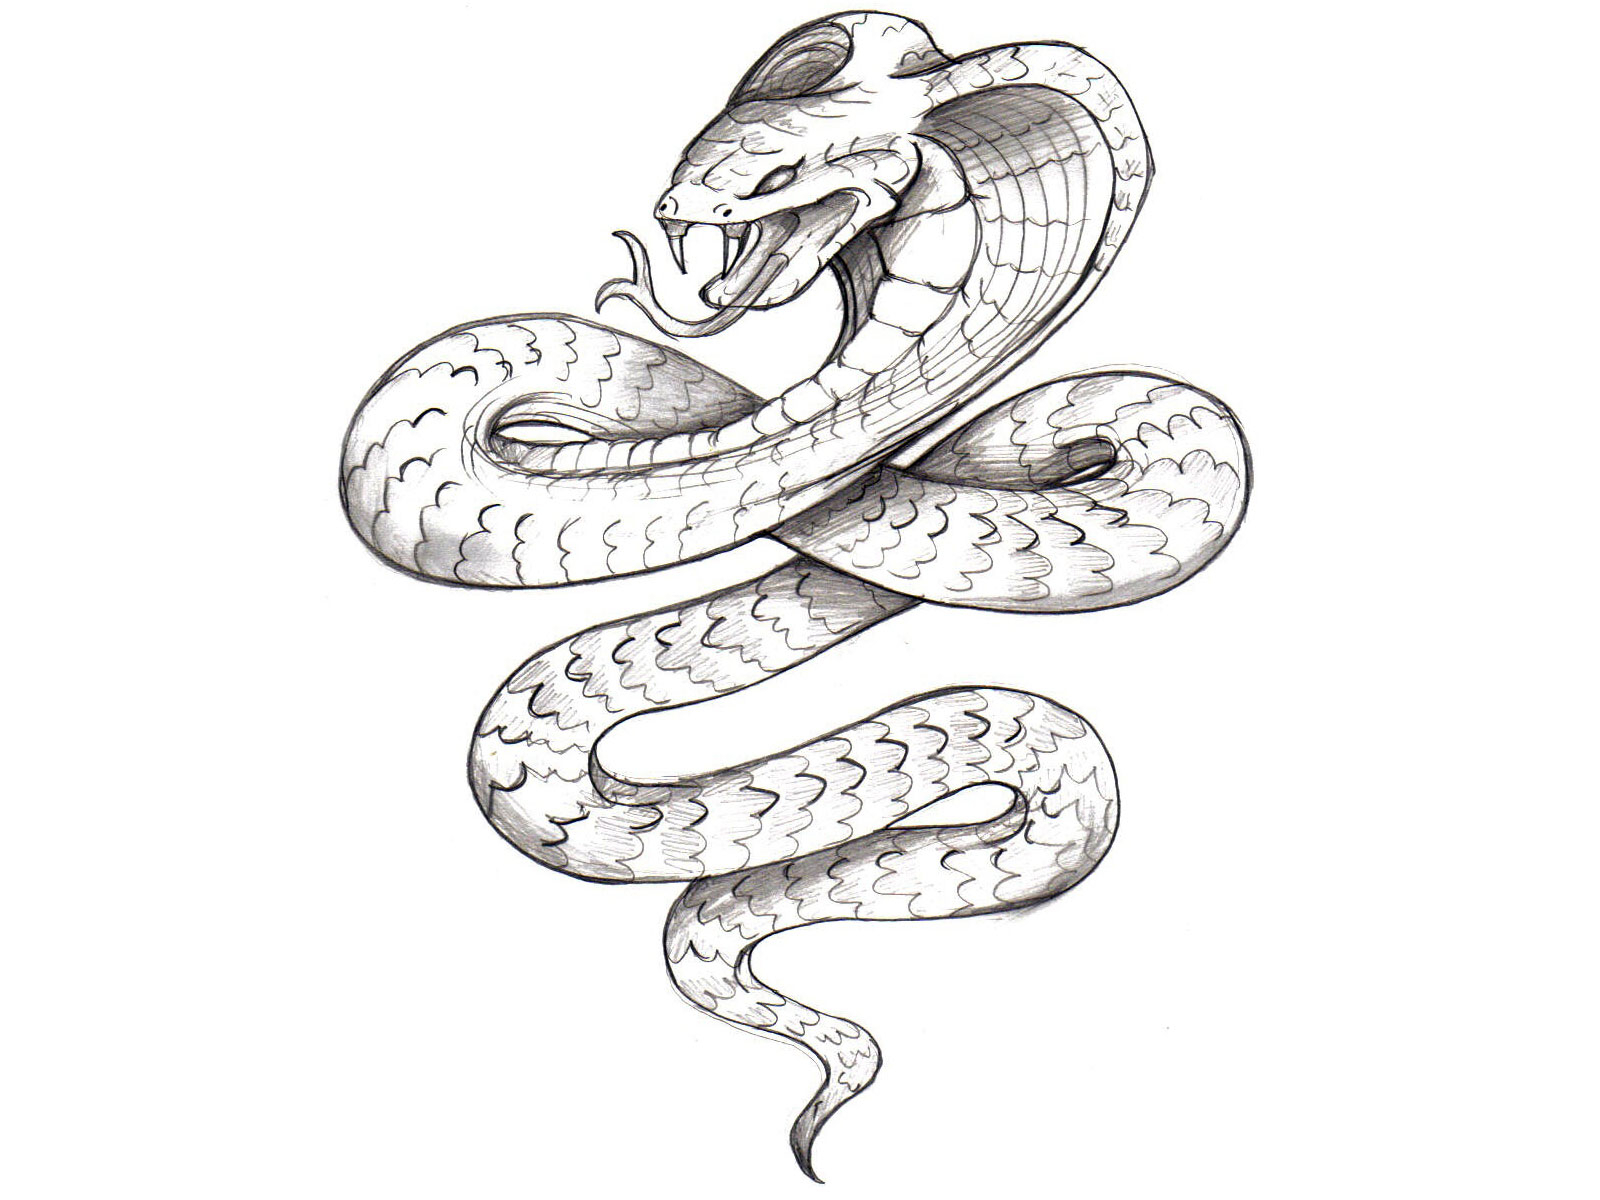 1600x1200 Pencil Sketches Of Snakes 3d Pencil Drawing Snake